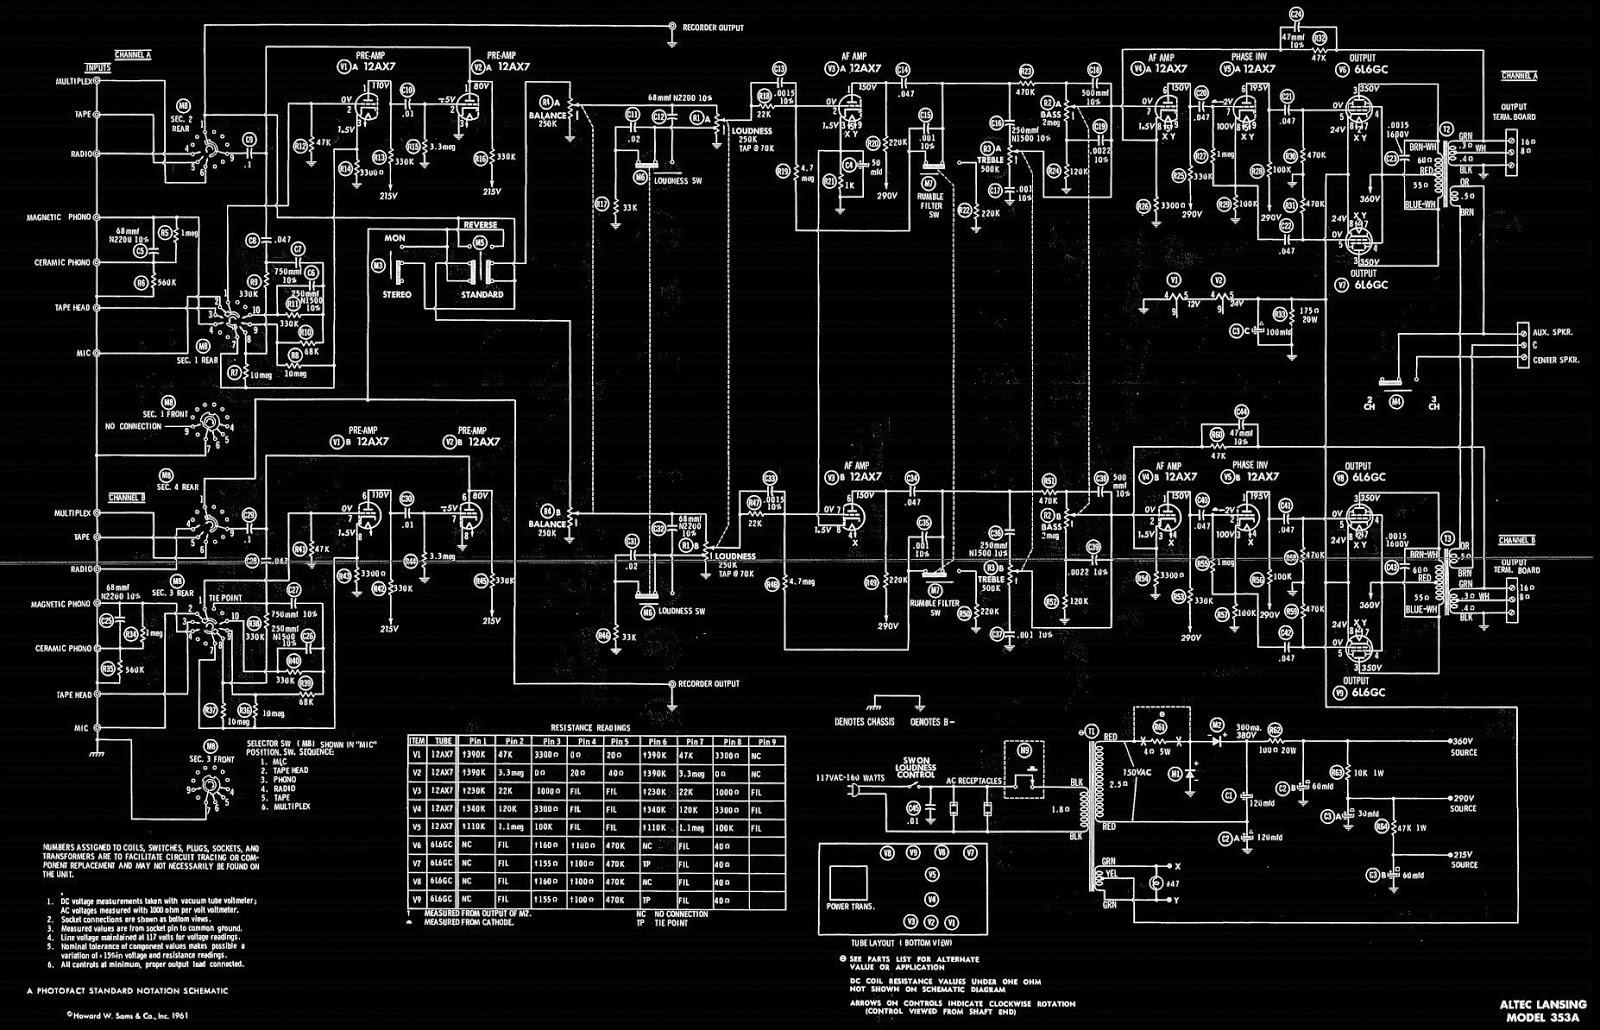 altec%2Blancing%2Bpower%2Bamp%2Bvalve%2Btype wiring diagram altec ta6 wiring diagram library